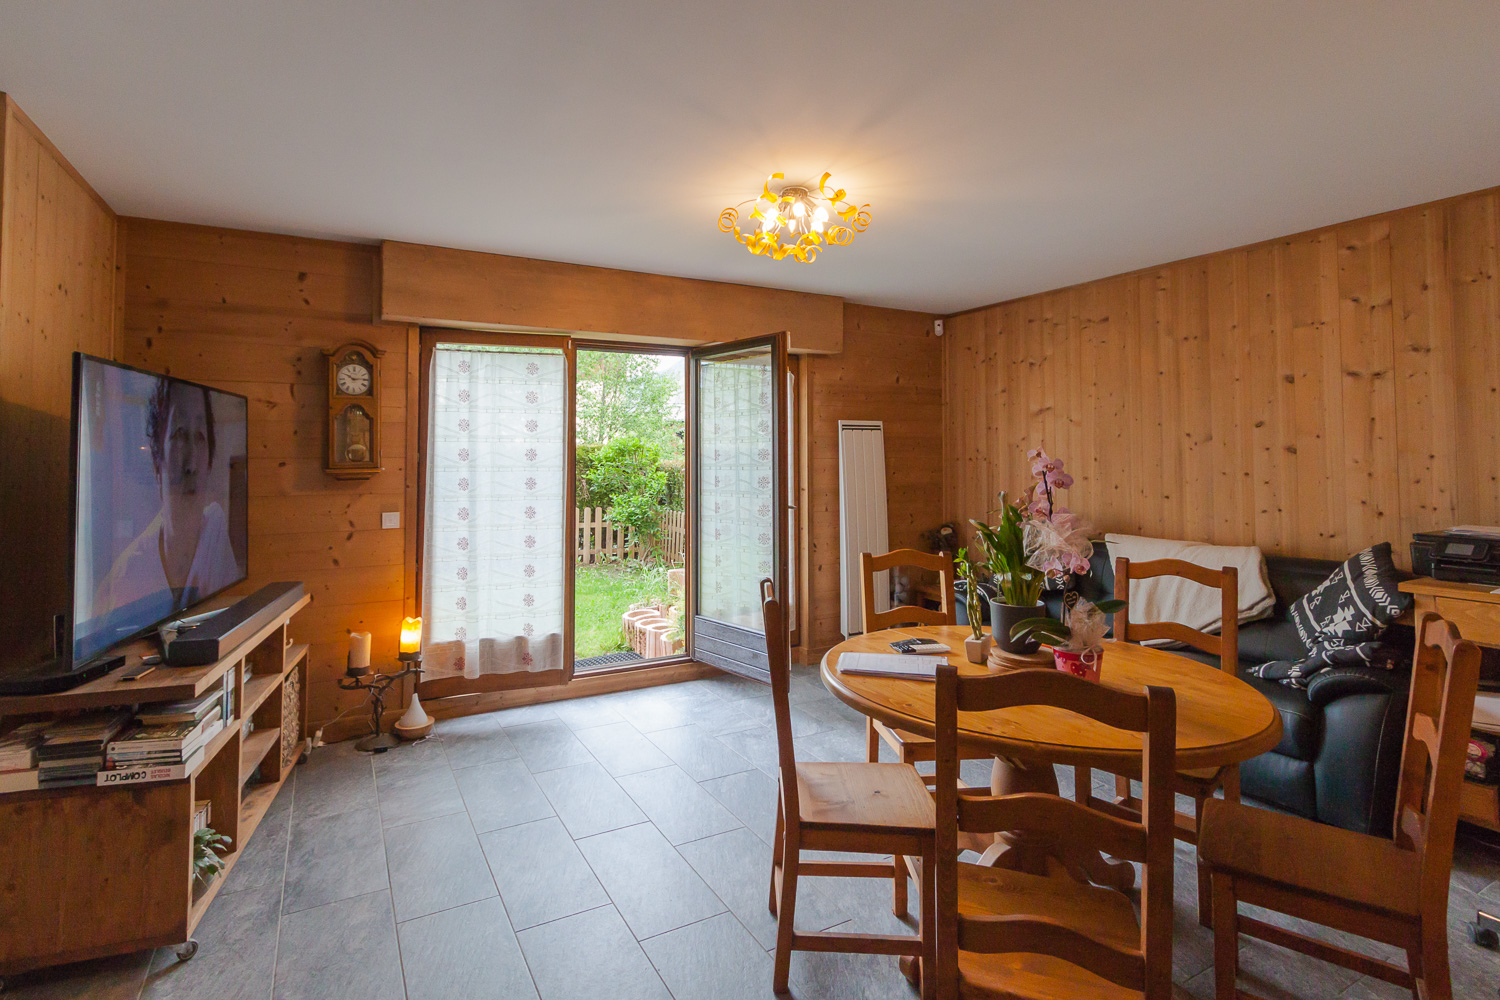 3 bedroomed apartment with private garden Chamonix centre